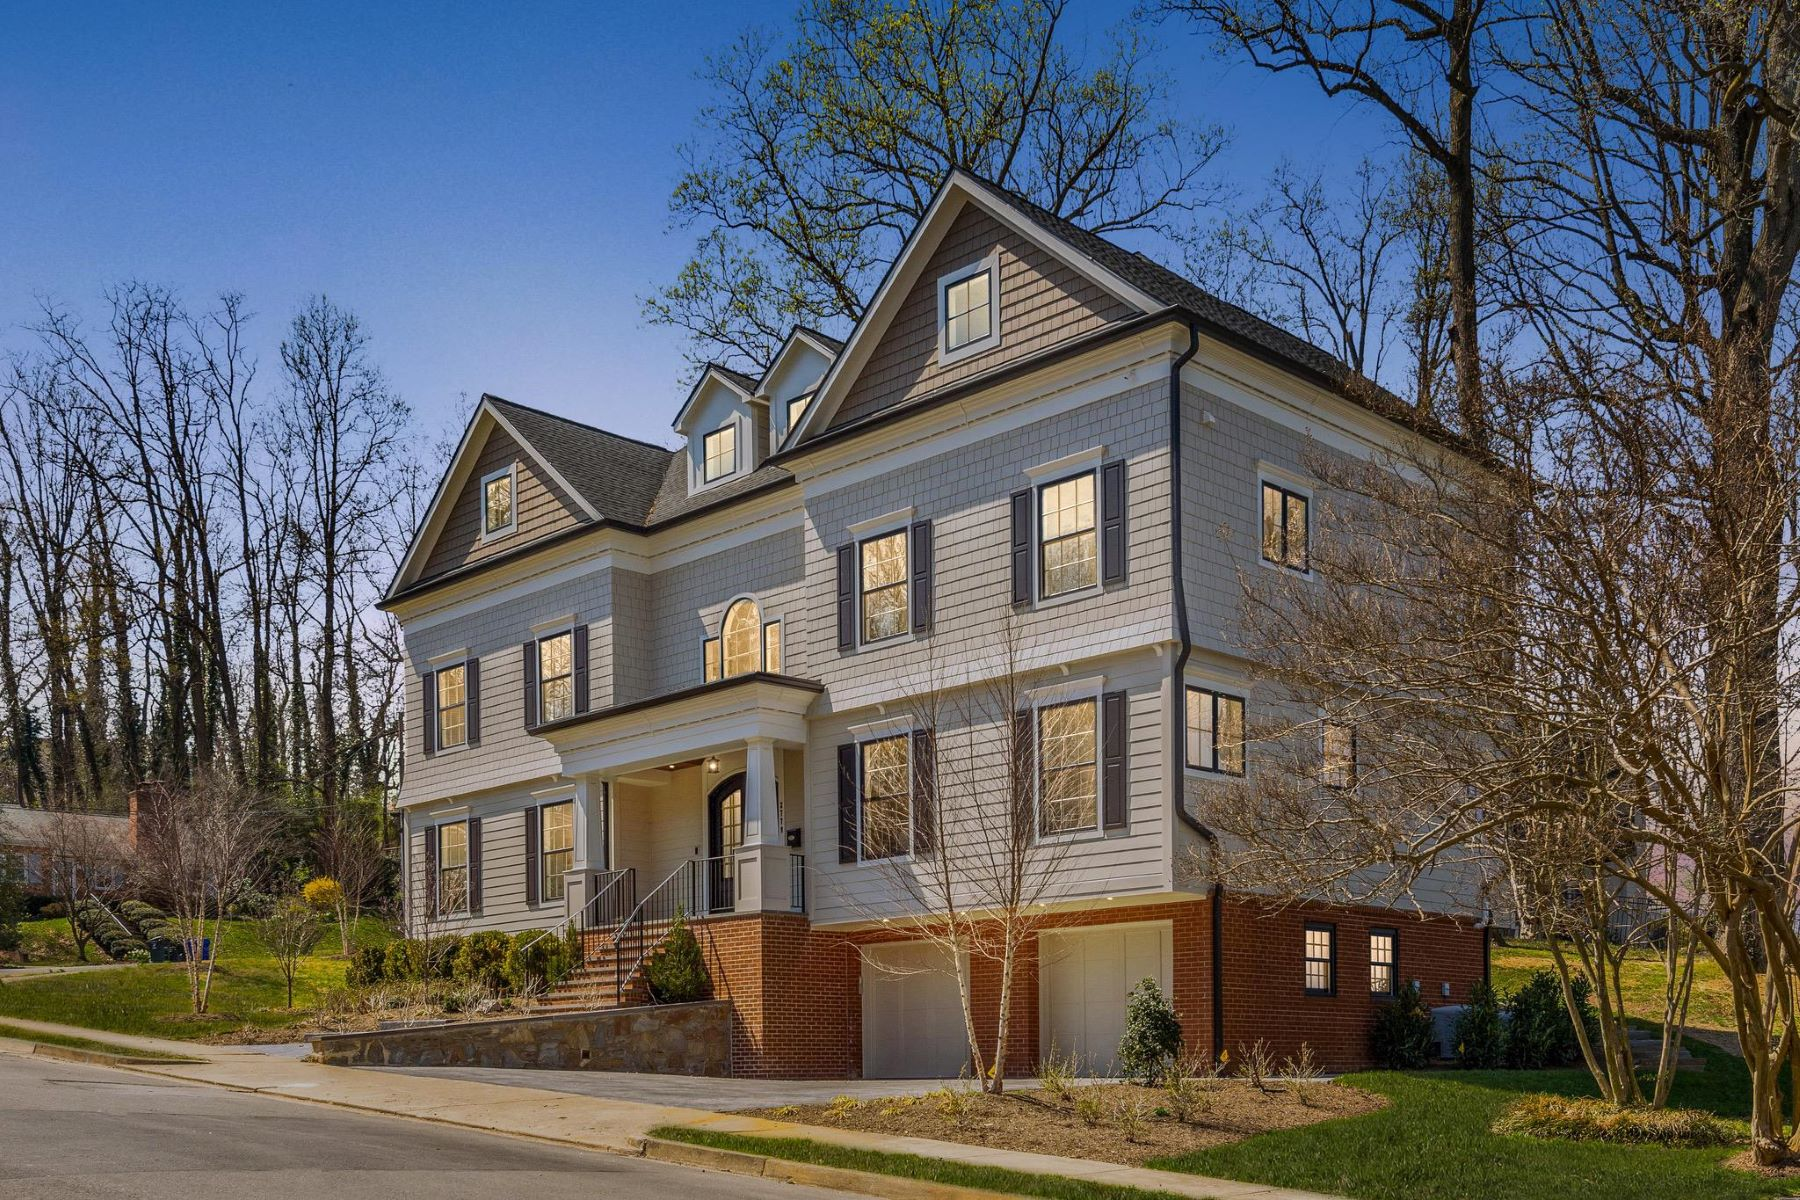 Single Family Homes for Active at 2779 N Wakefield St Arlington, Virginia 22207 United States